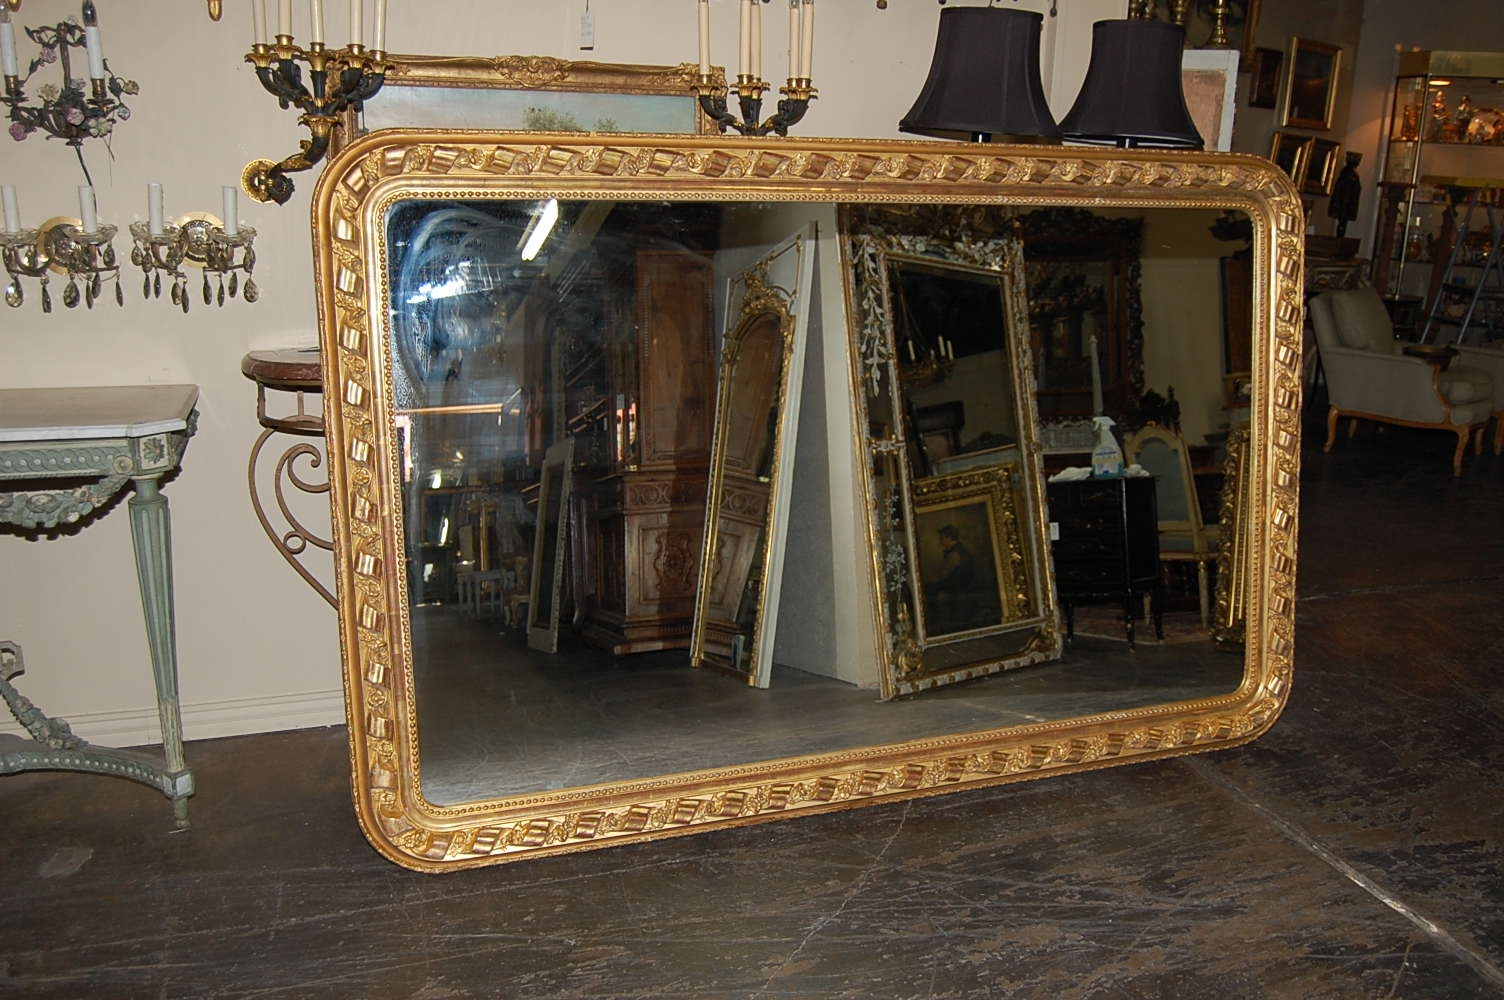 Large French Horizontal Mirror For Sale Antiques Classifieds Within Old Fashioned Mirrors For Sale (Image 11 of 15)